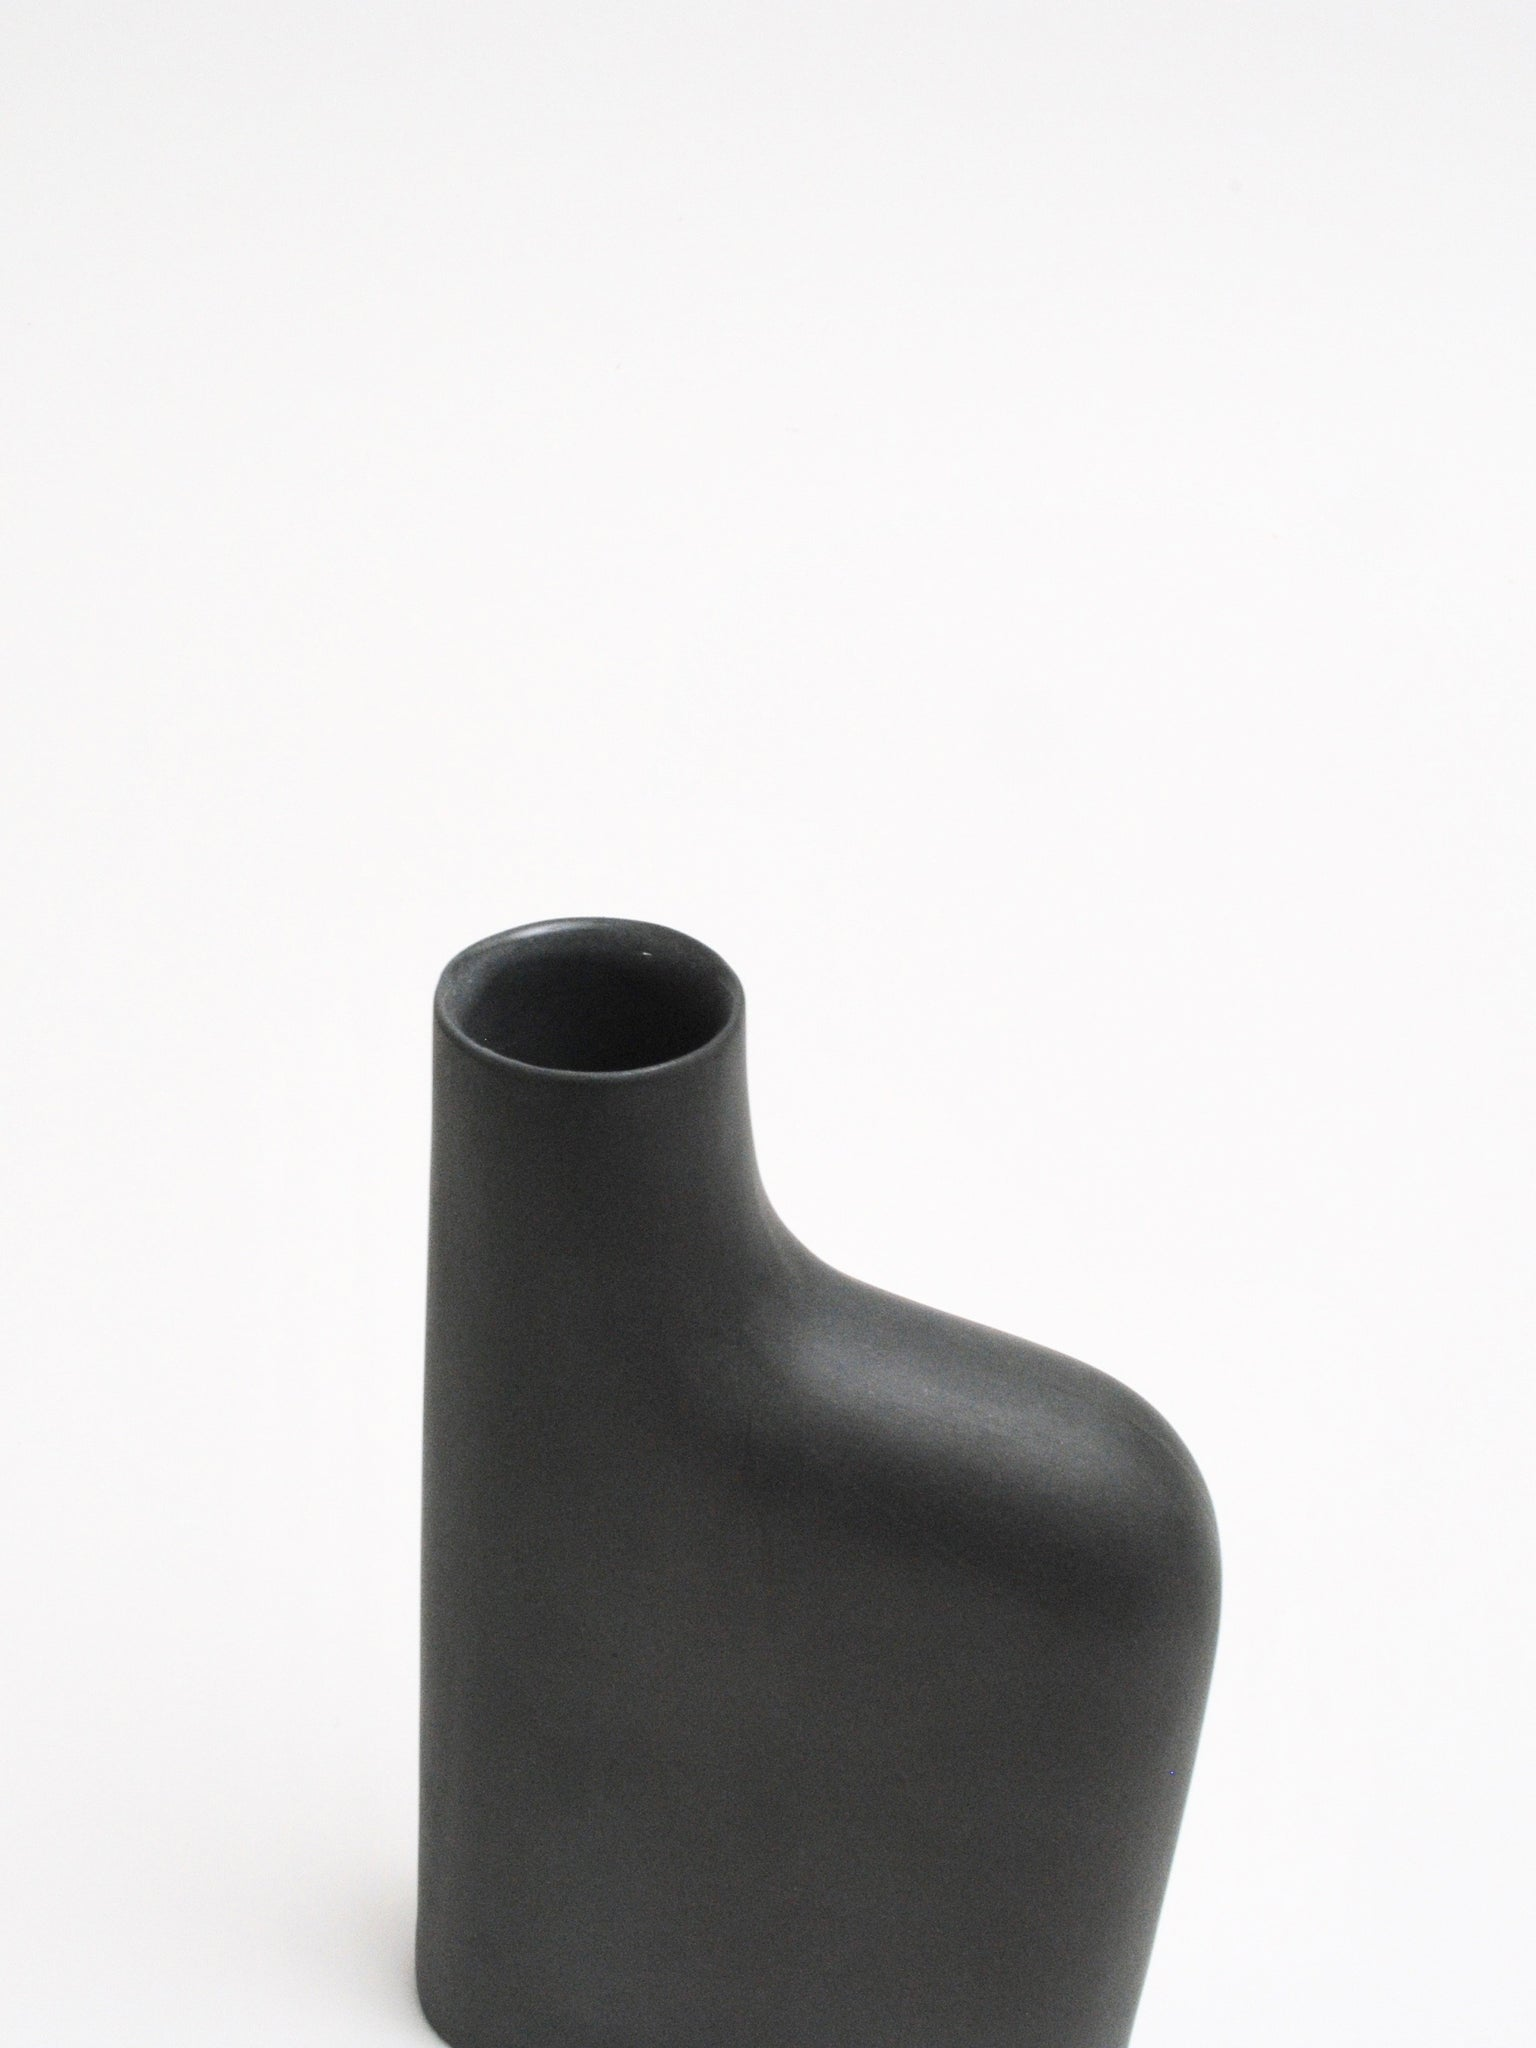 Porcelain Flask in Charcoal